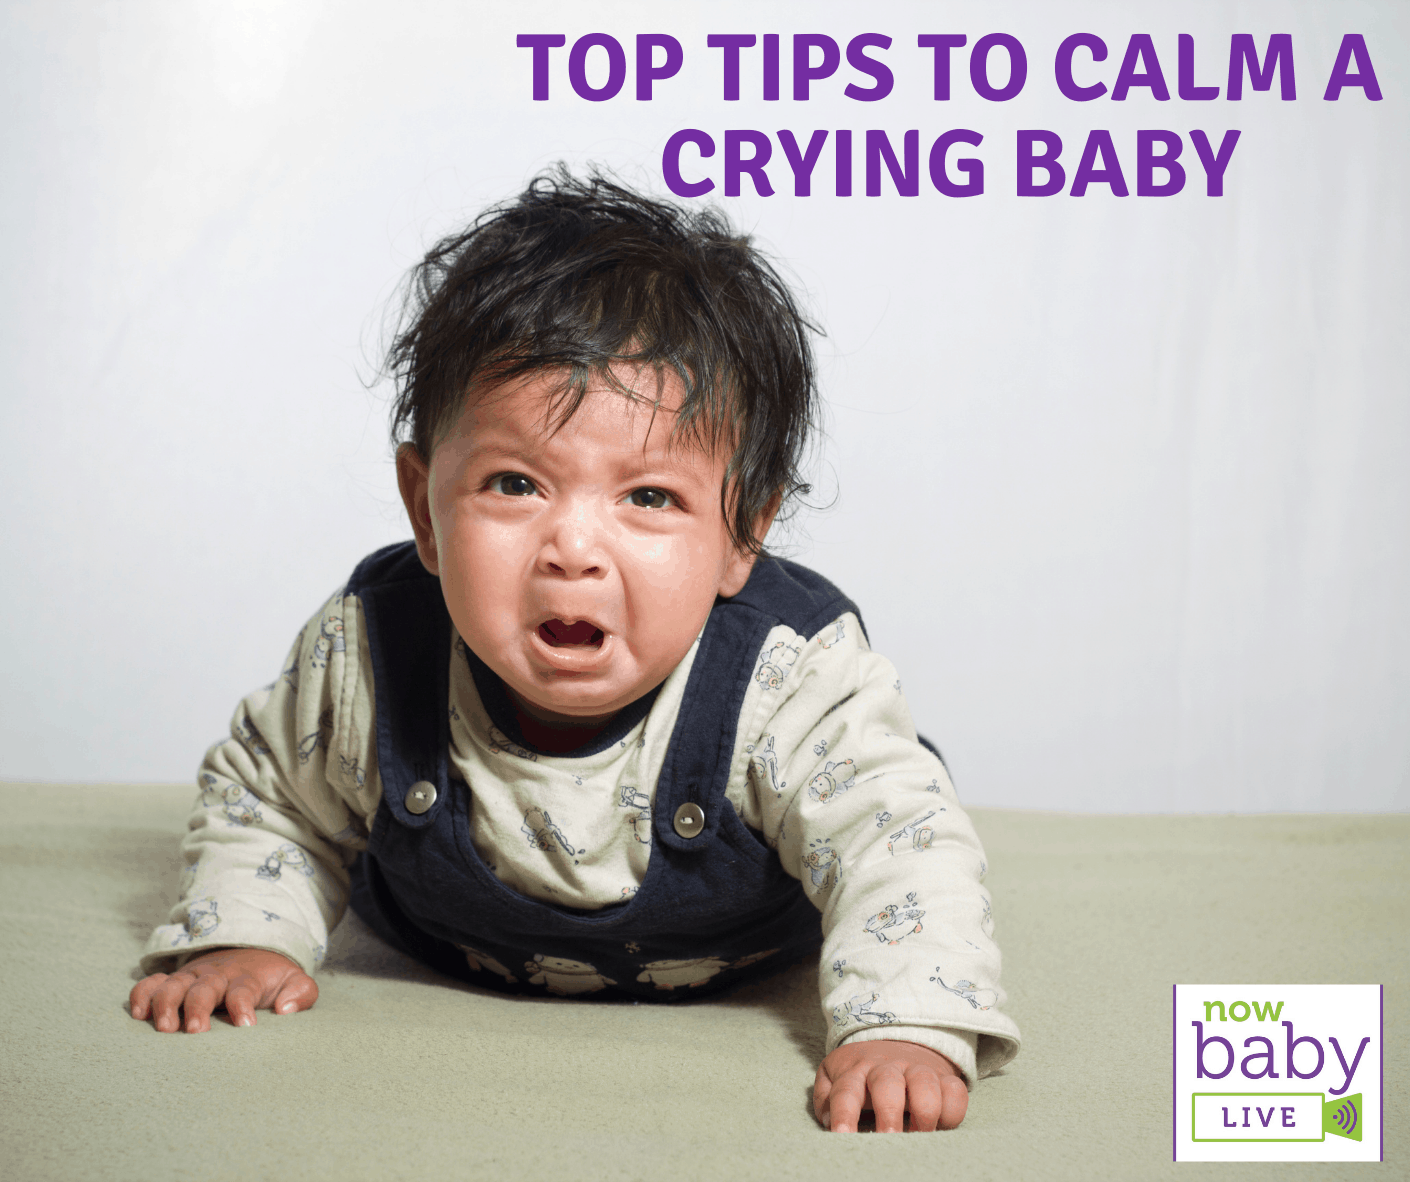 Top tips to calm a crying baby